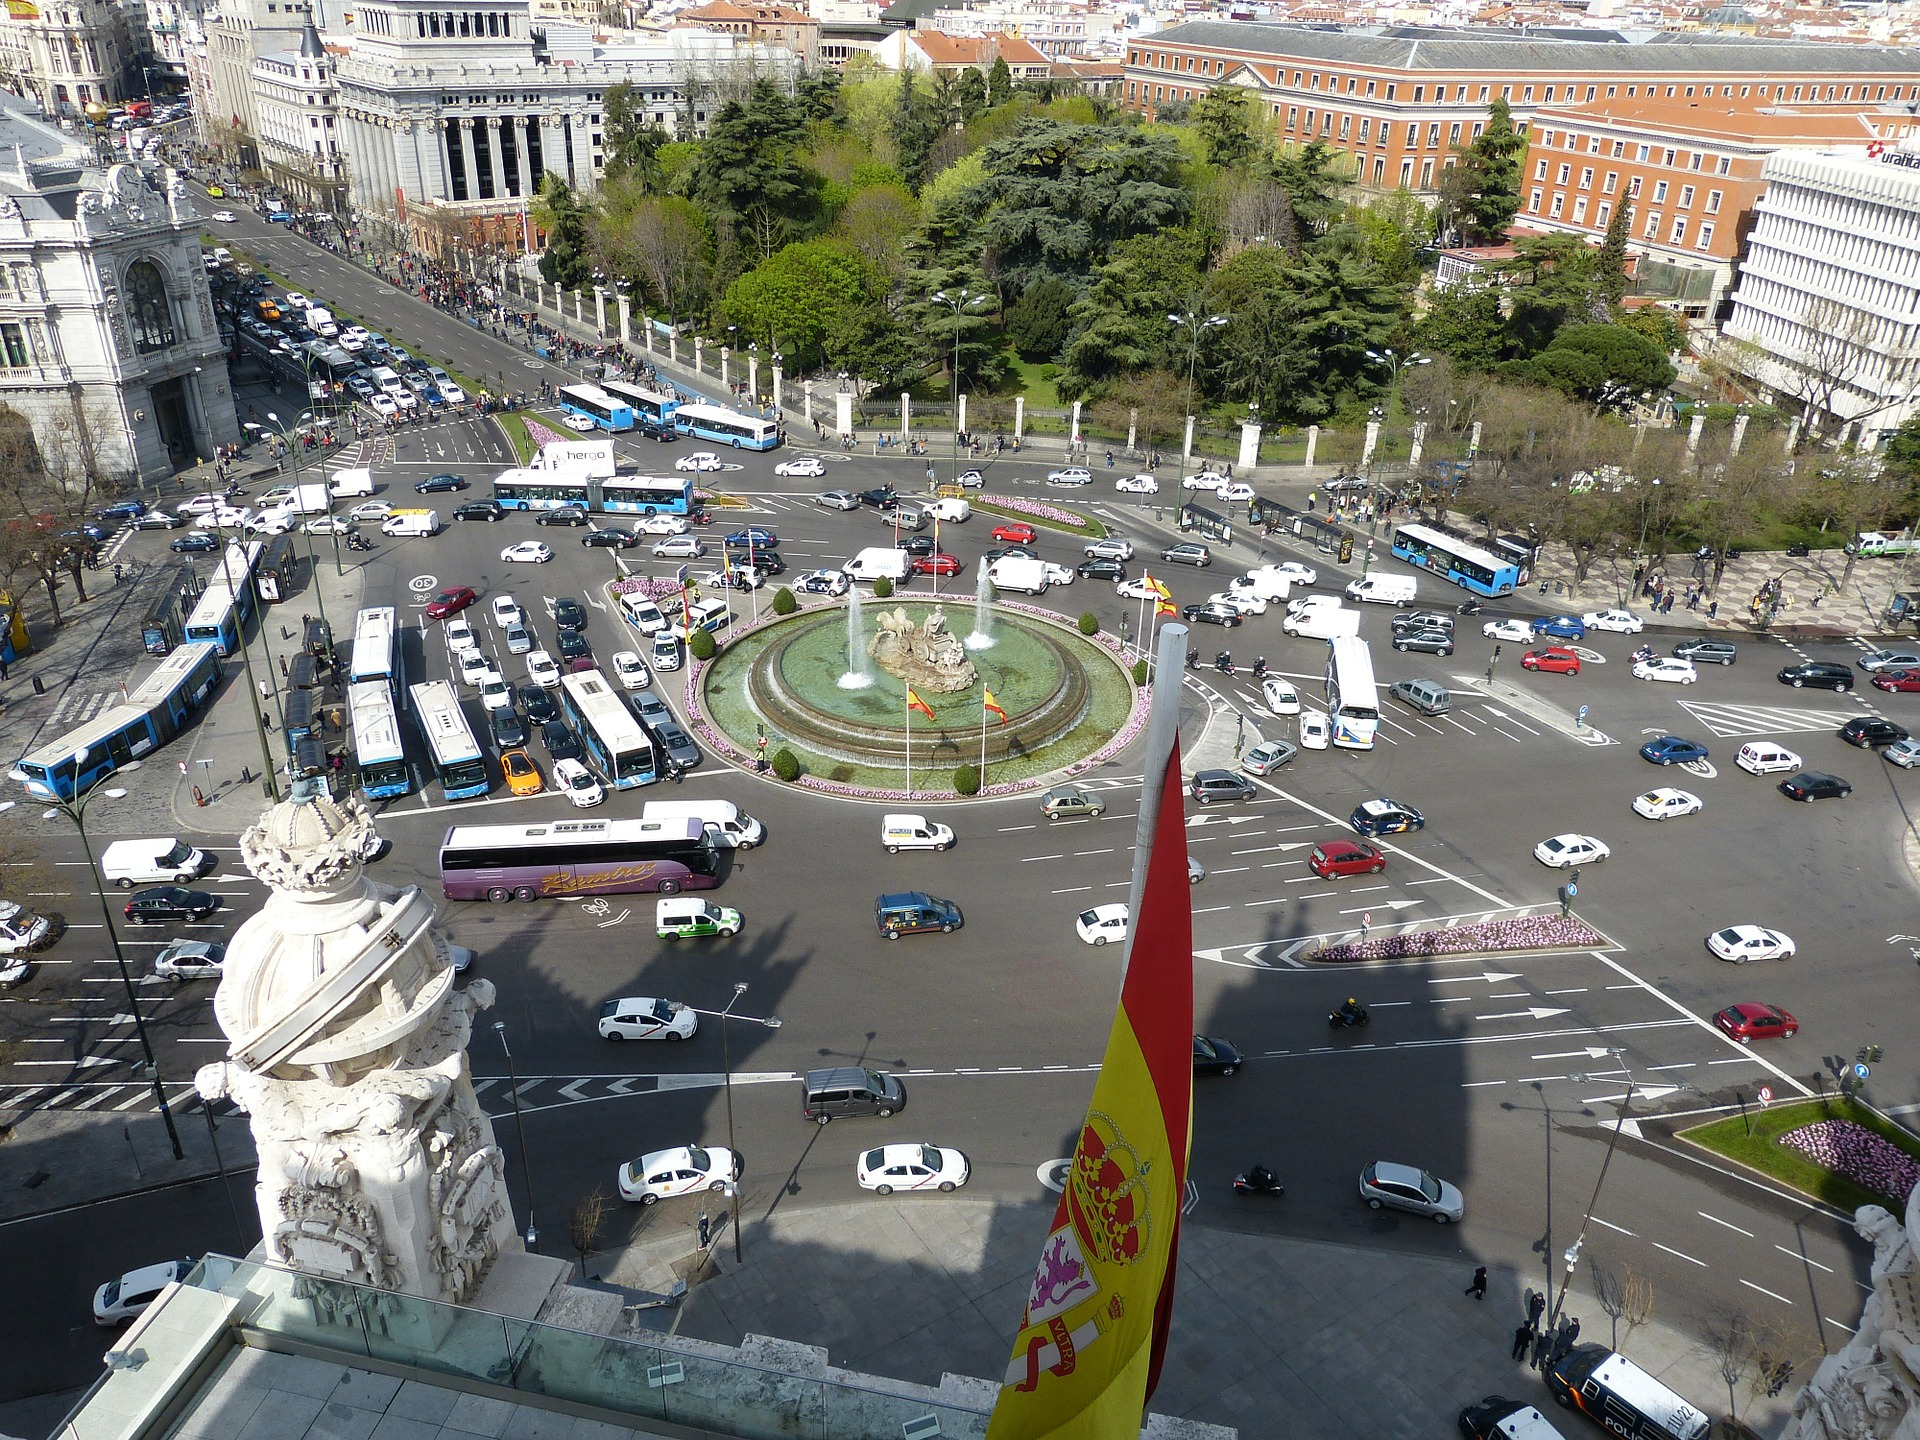 Traffic in Madrid, Spain